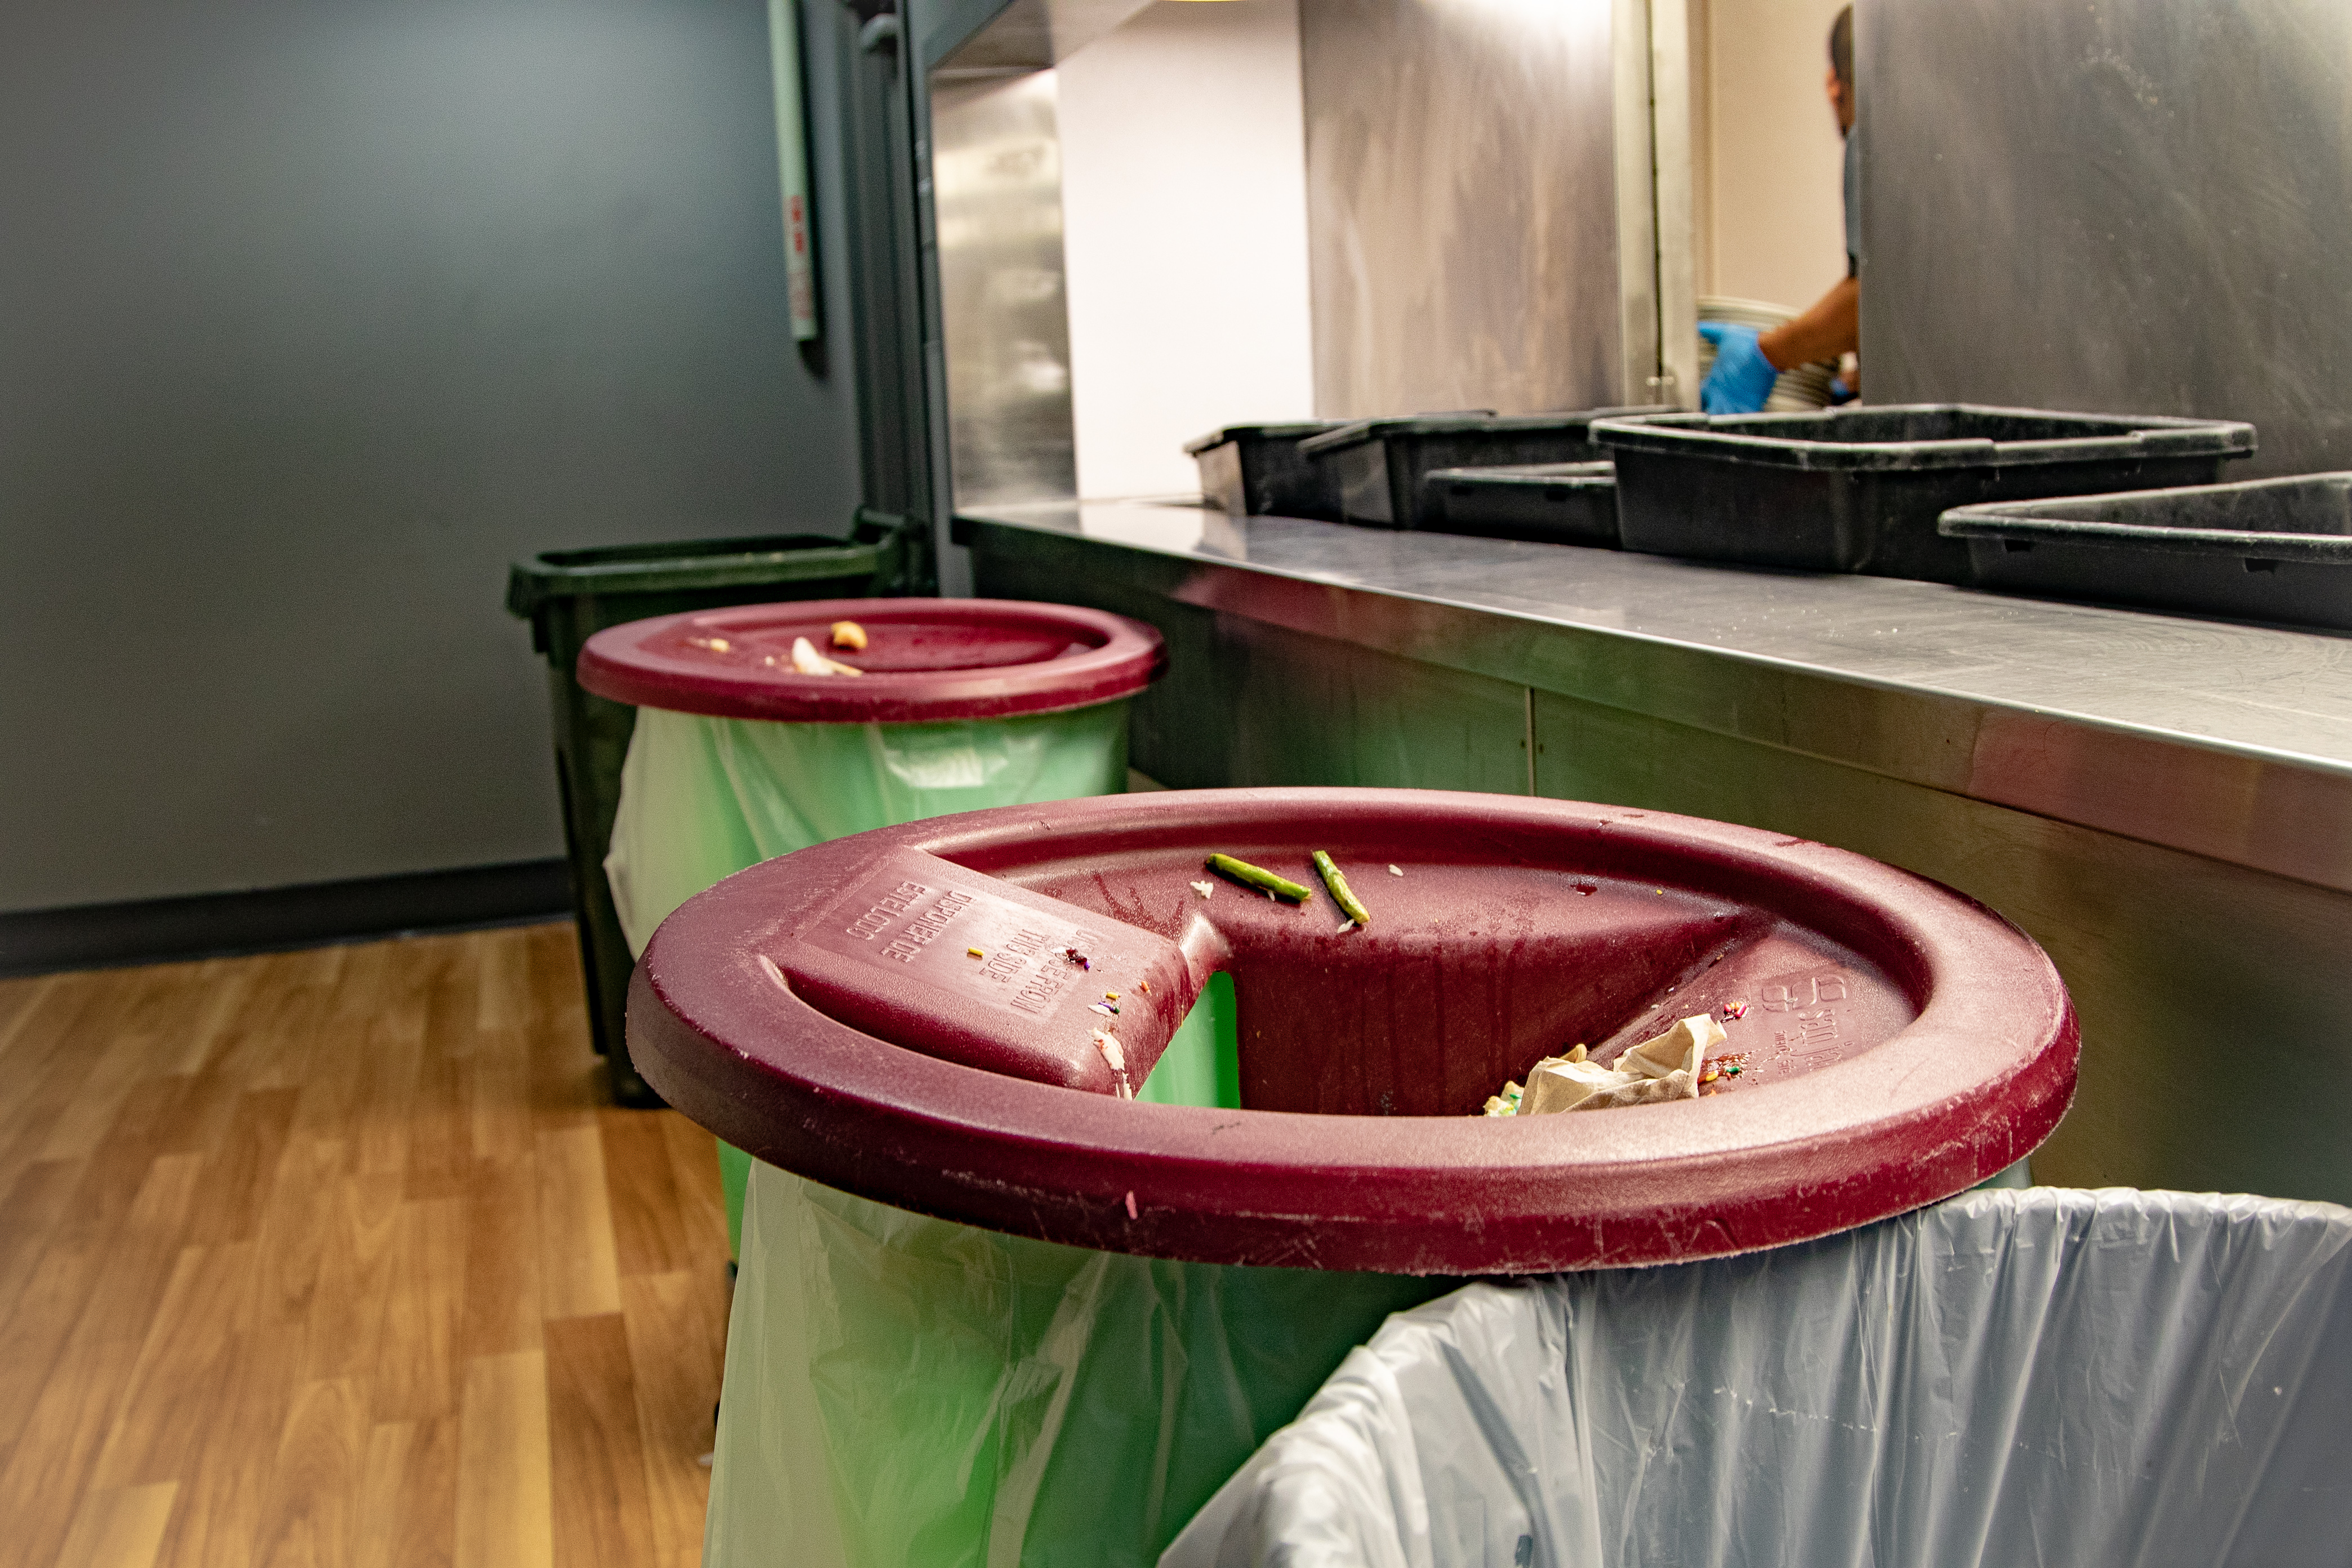 Reducing, reusing, and recycling our way to a cleaner campus